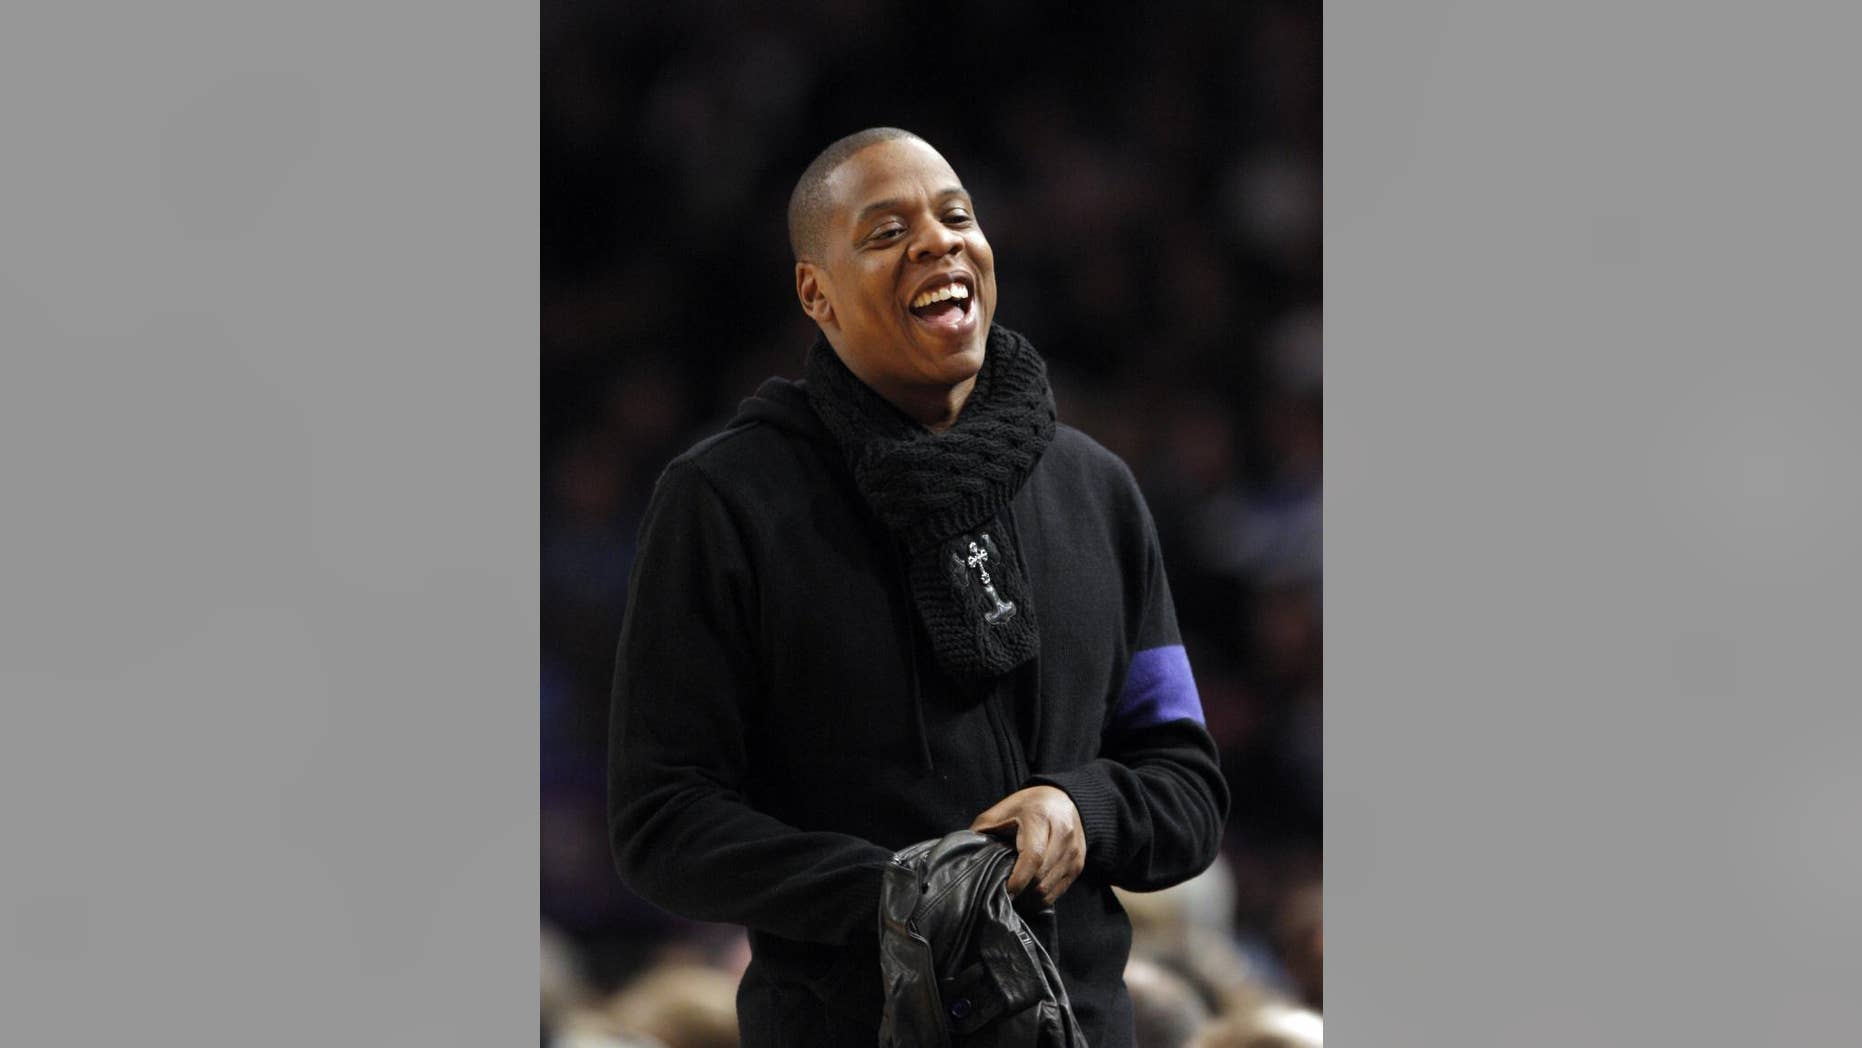 Jay Z wrote an article about the bail industry.